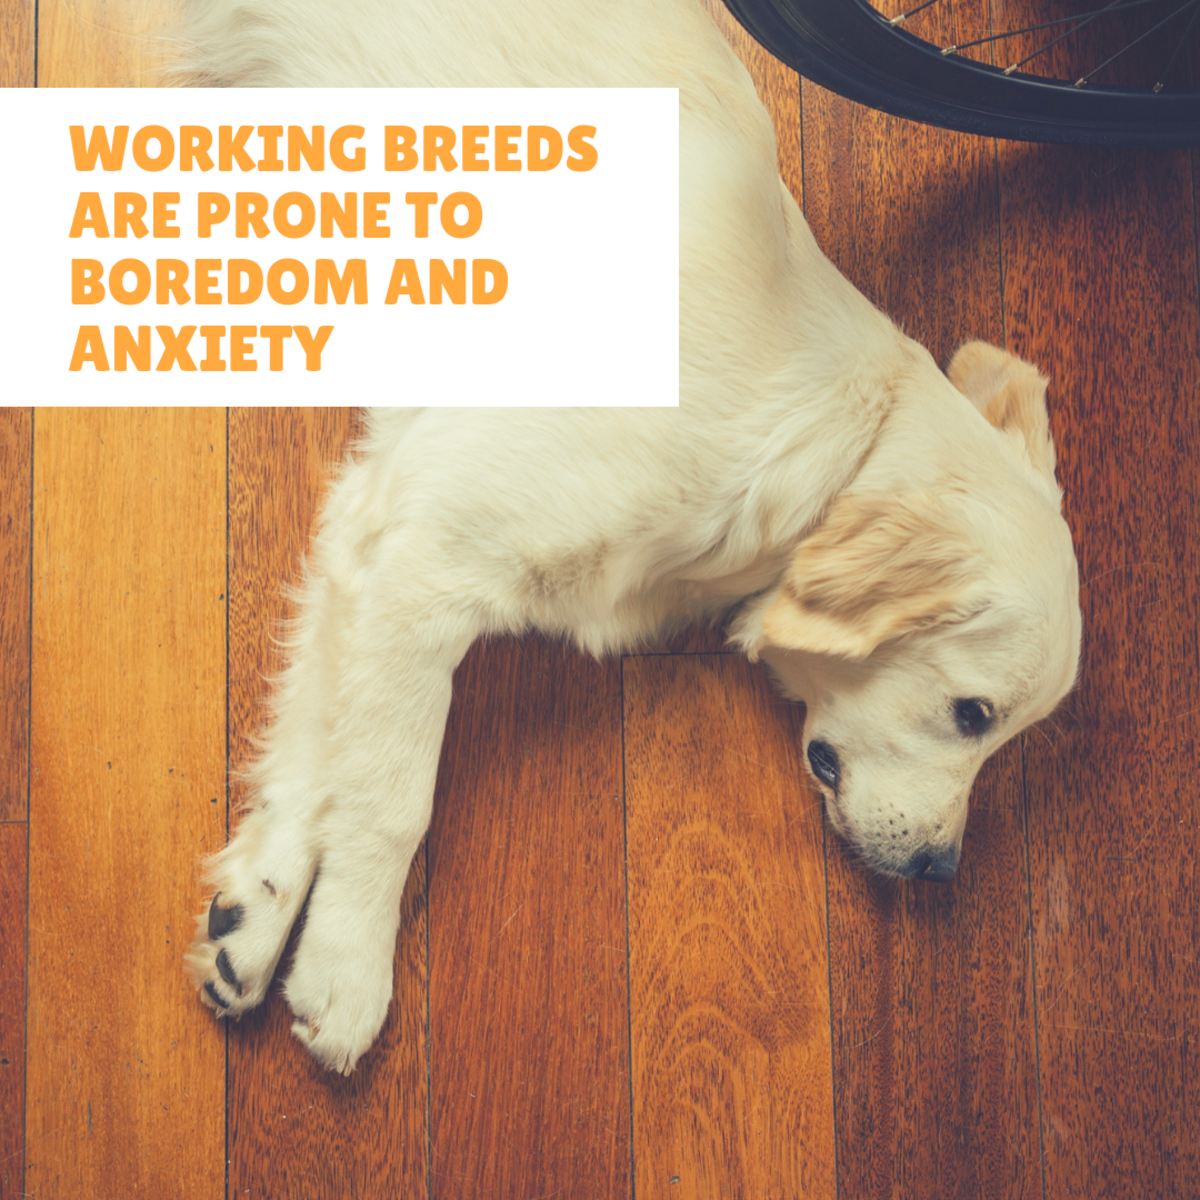 The Labrador Retriever, one of the most popular breeds in the world, is prone to boredom if kept indoors.